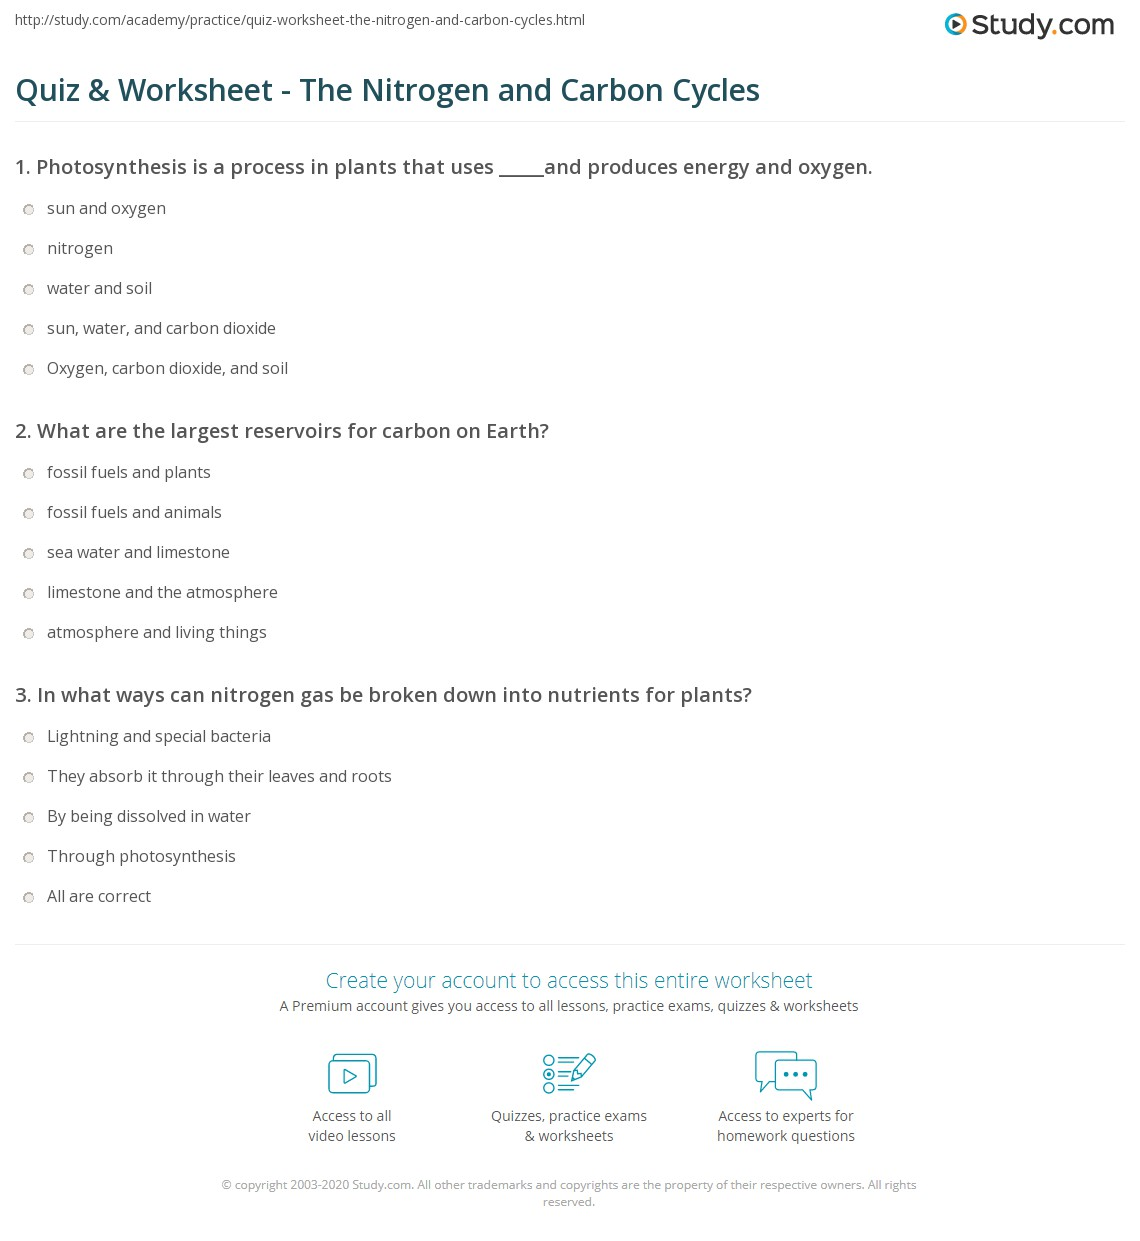 Quiz & Worksheet - The Nitrogen and Carbon Cycles | Study.com